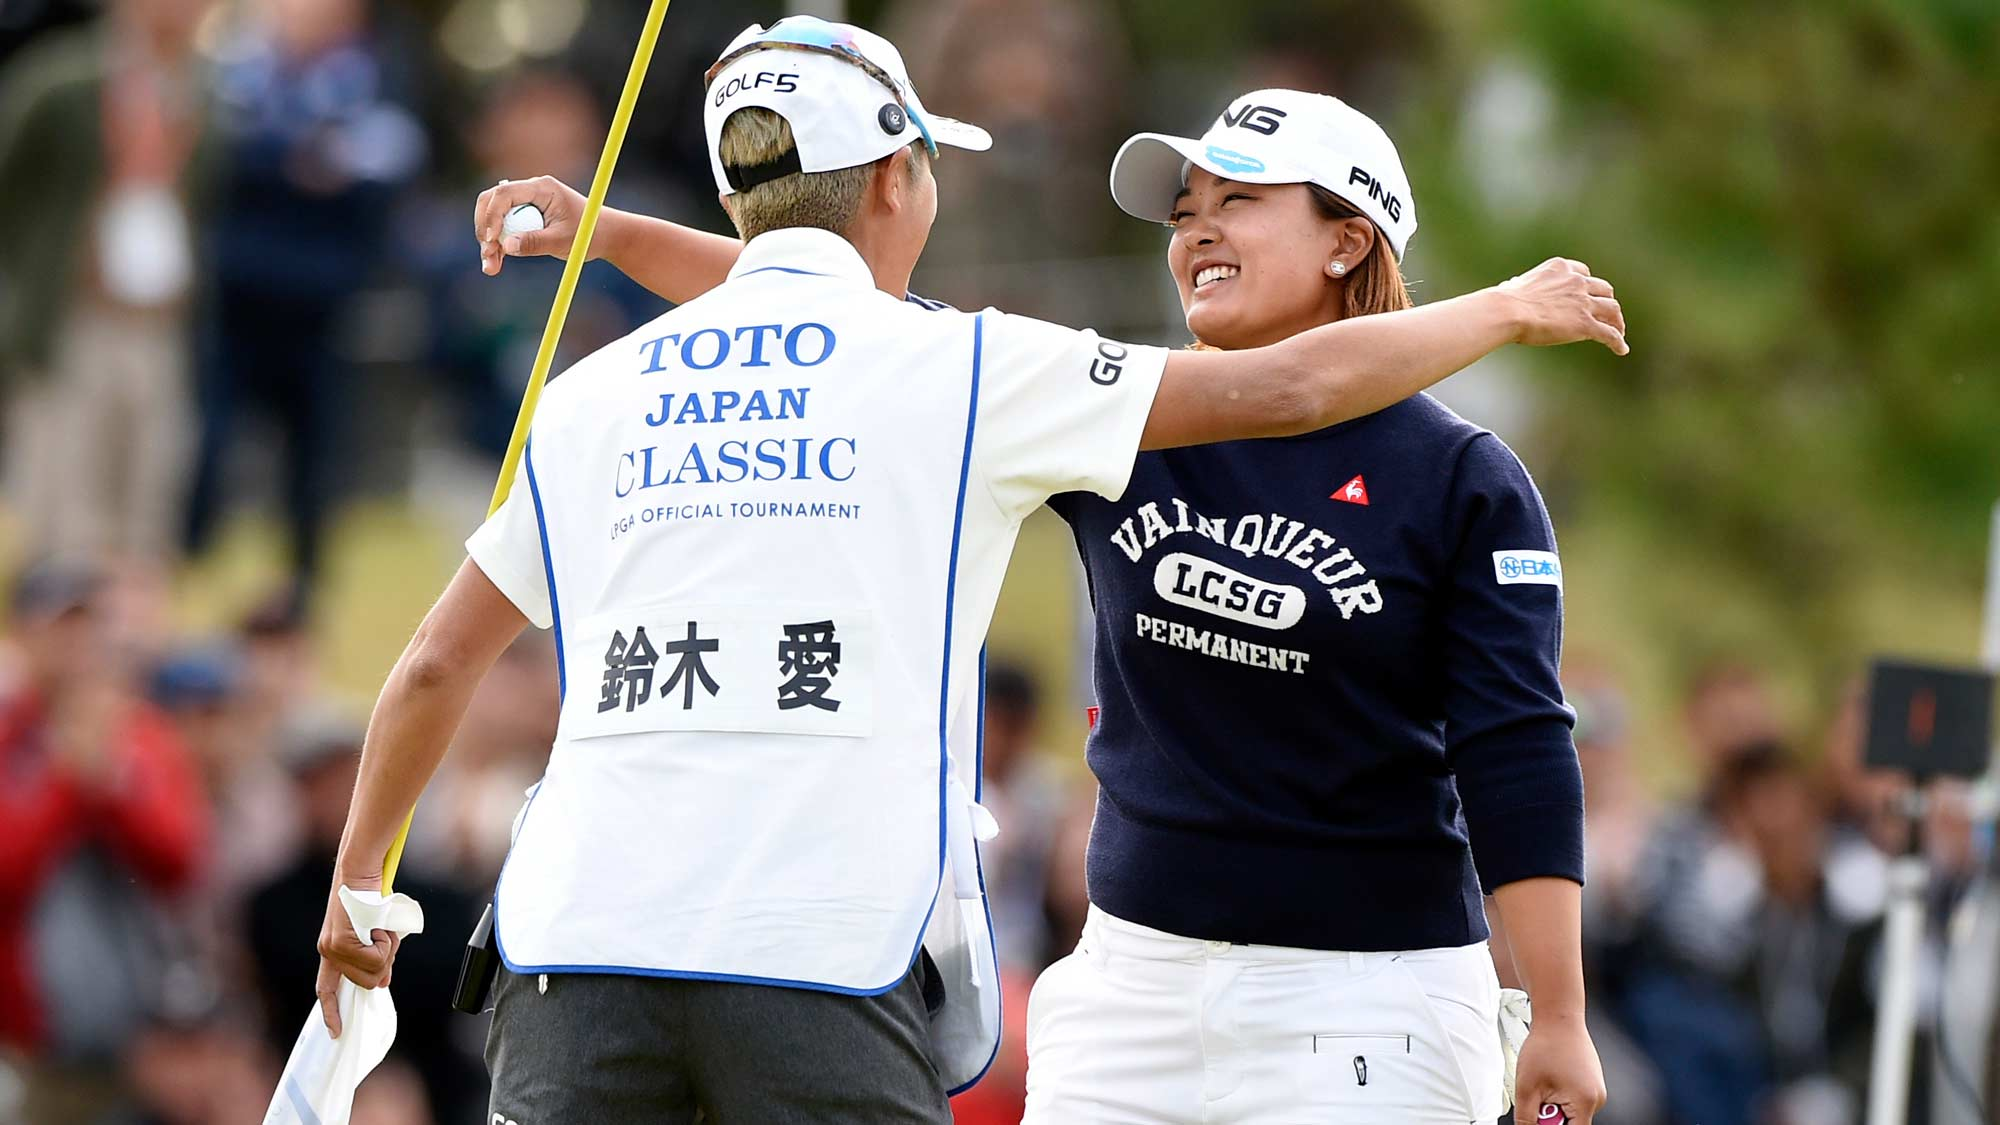 Ai Suzuki hugs caddy after winning TOTO Japan Classic